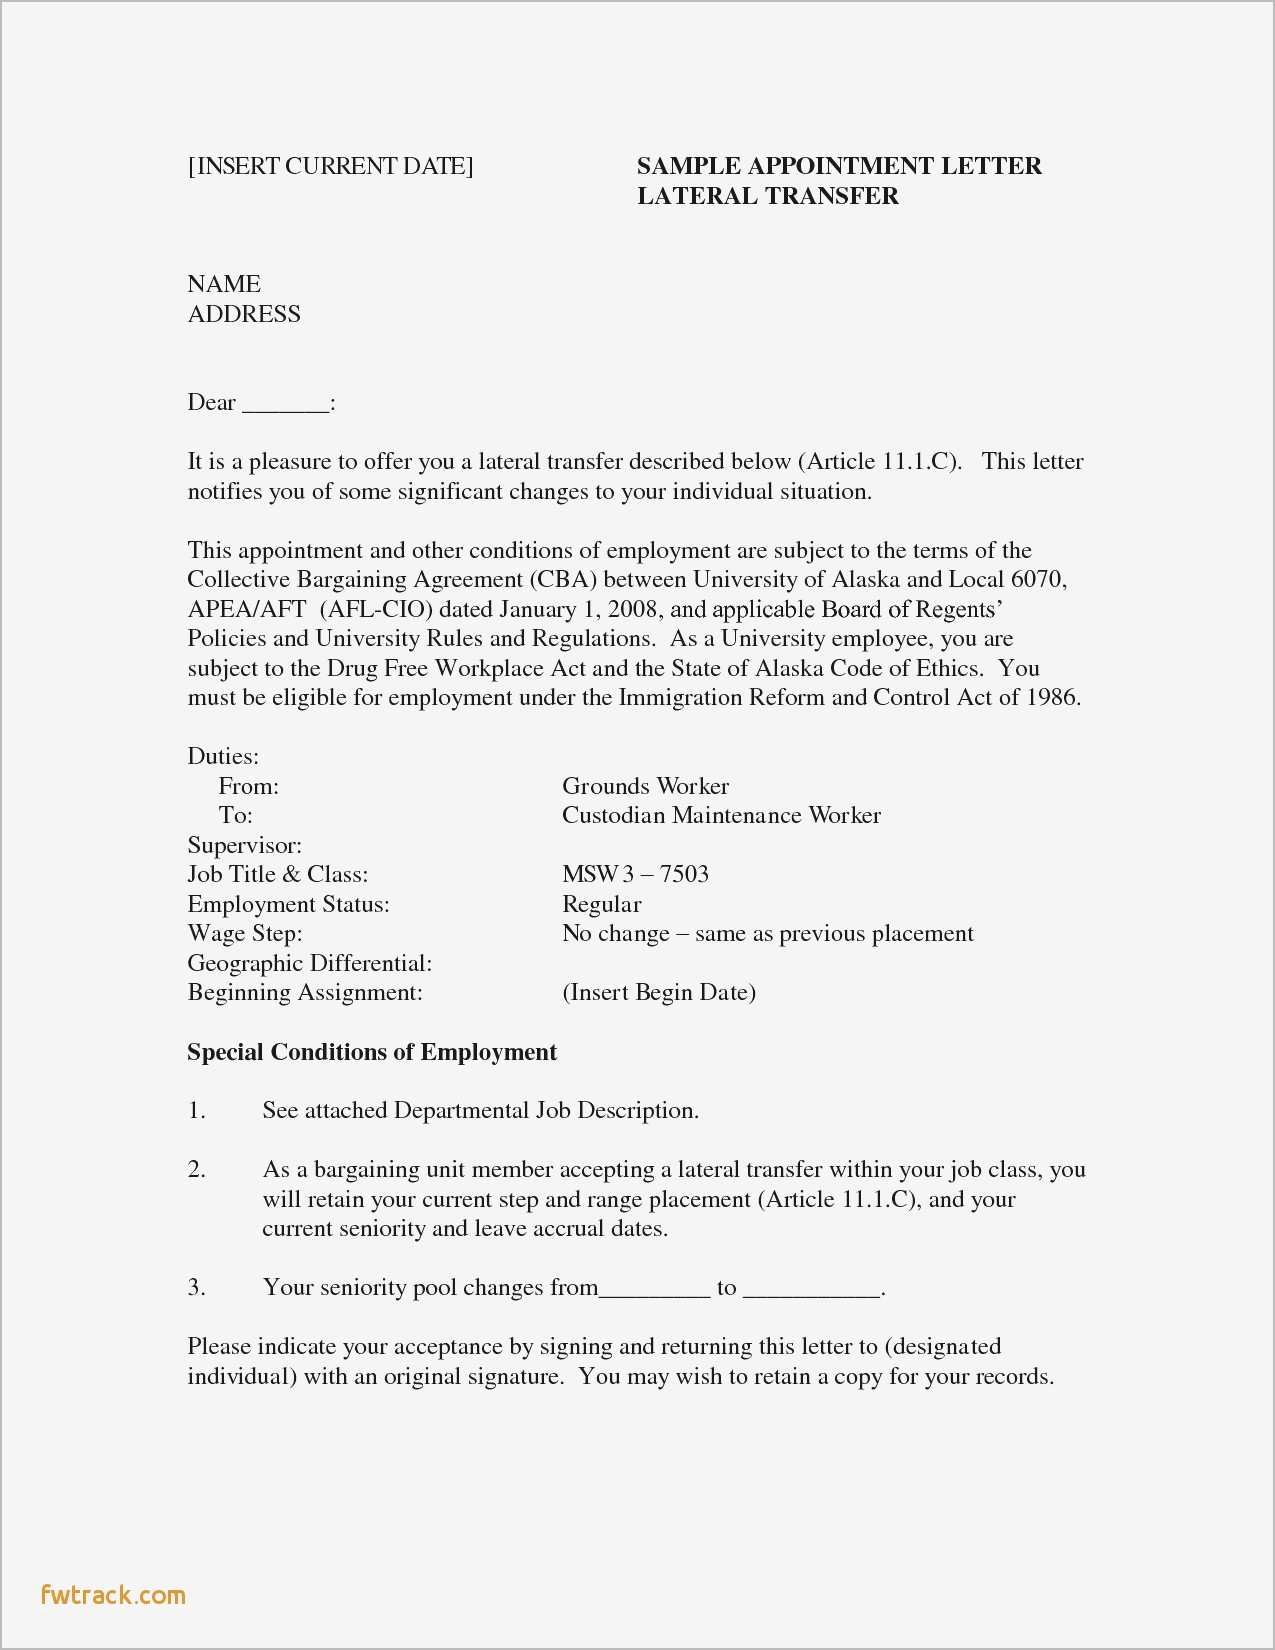 Dating Resume Template - Modern Resume Templates Fwtrack Fwtrack